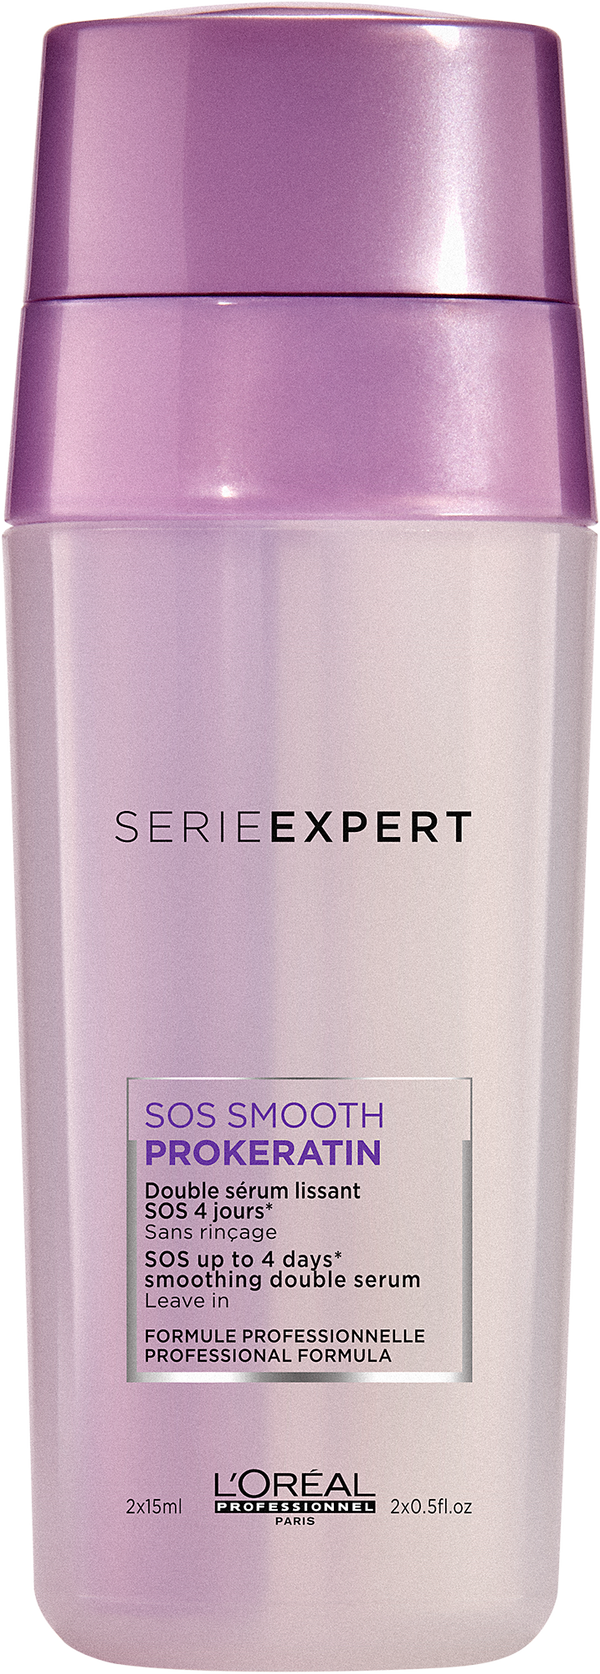 L'Oreal Professionnel Serie Expert Liss Unlimited SOS Smoothing Double Serum